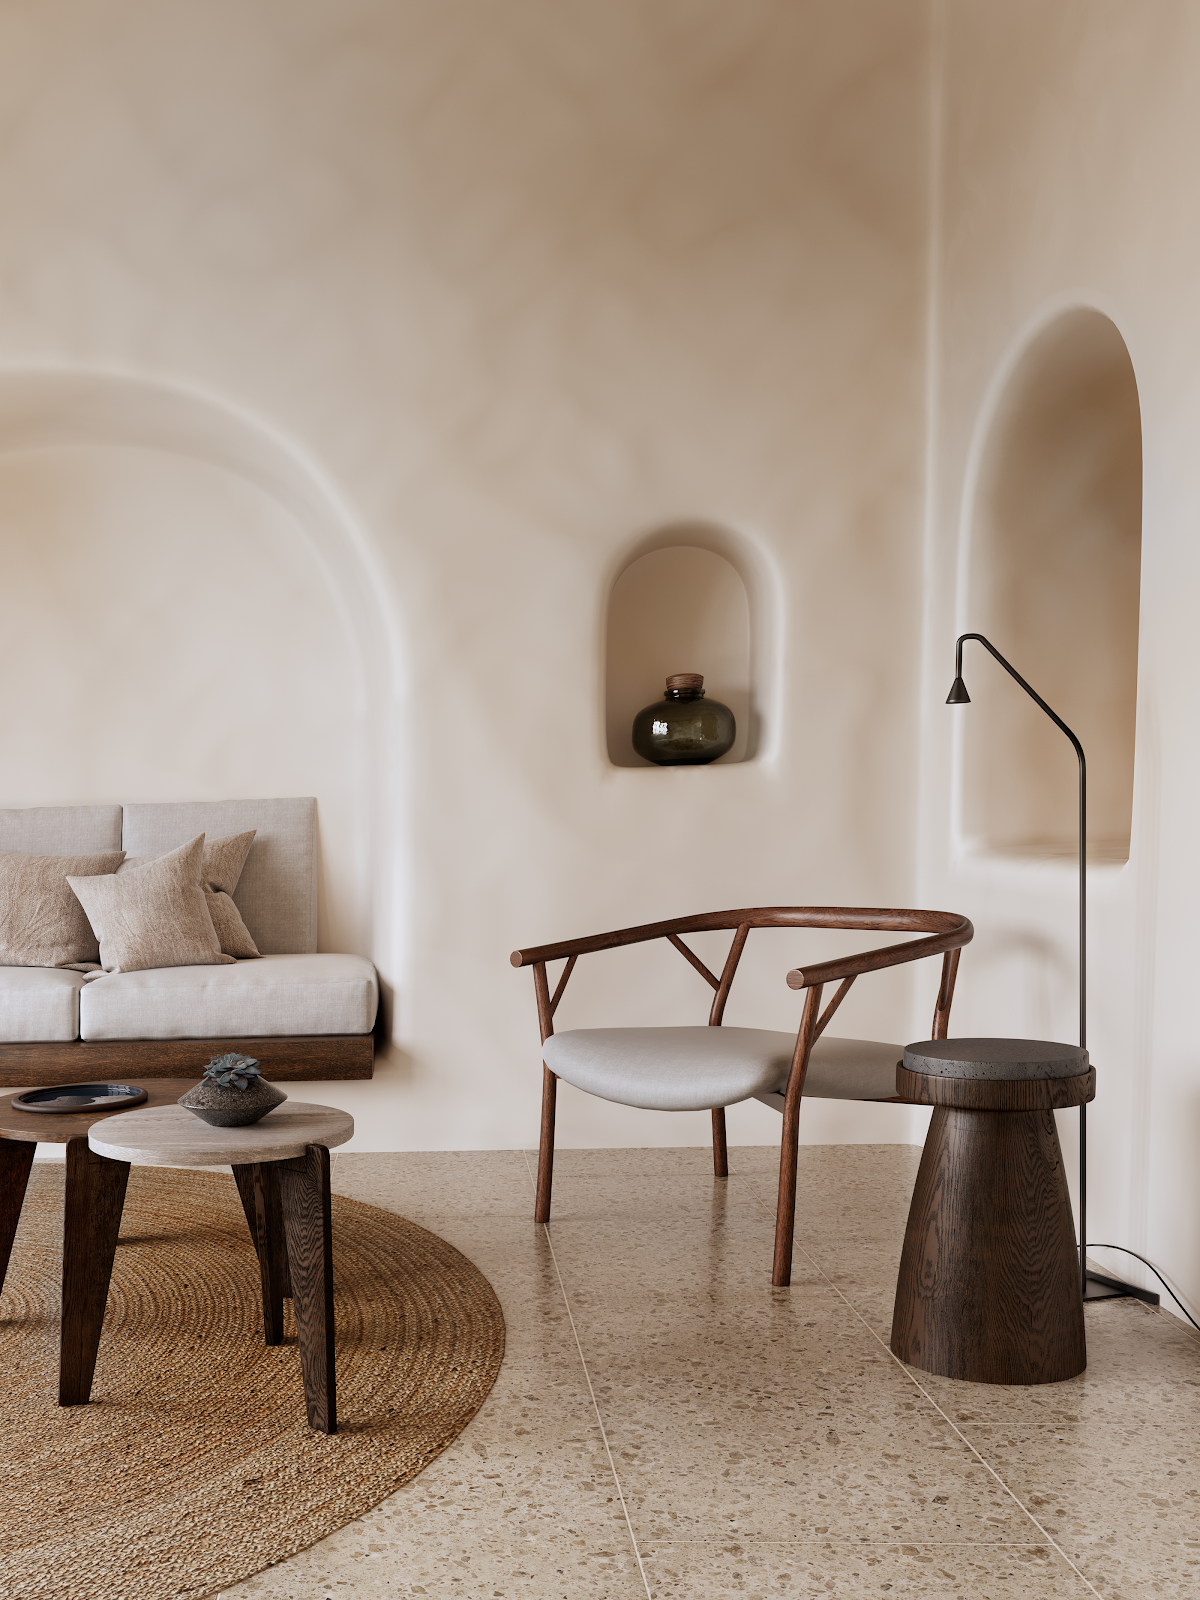 Photo of Minimalism rethought: New Mediterranean interior trend